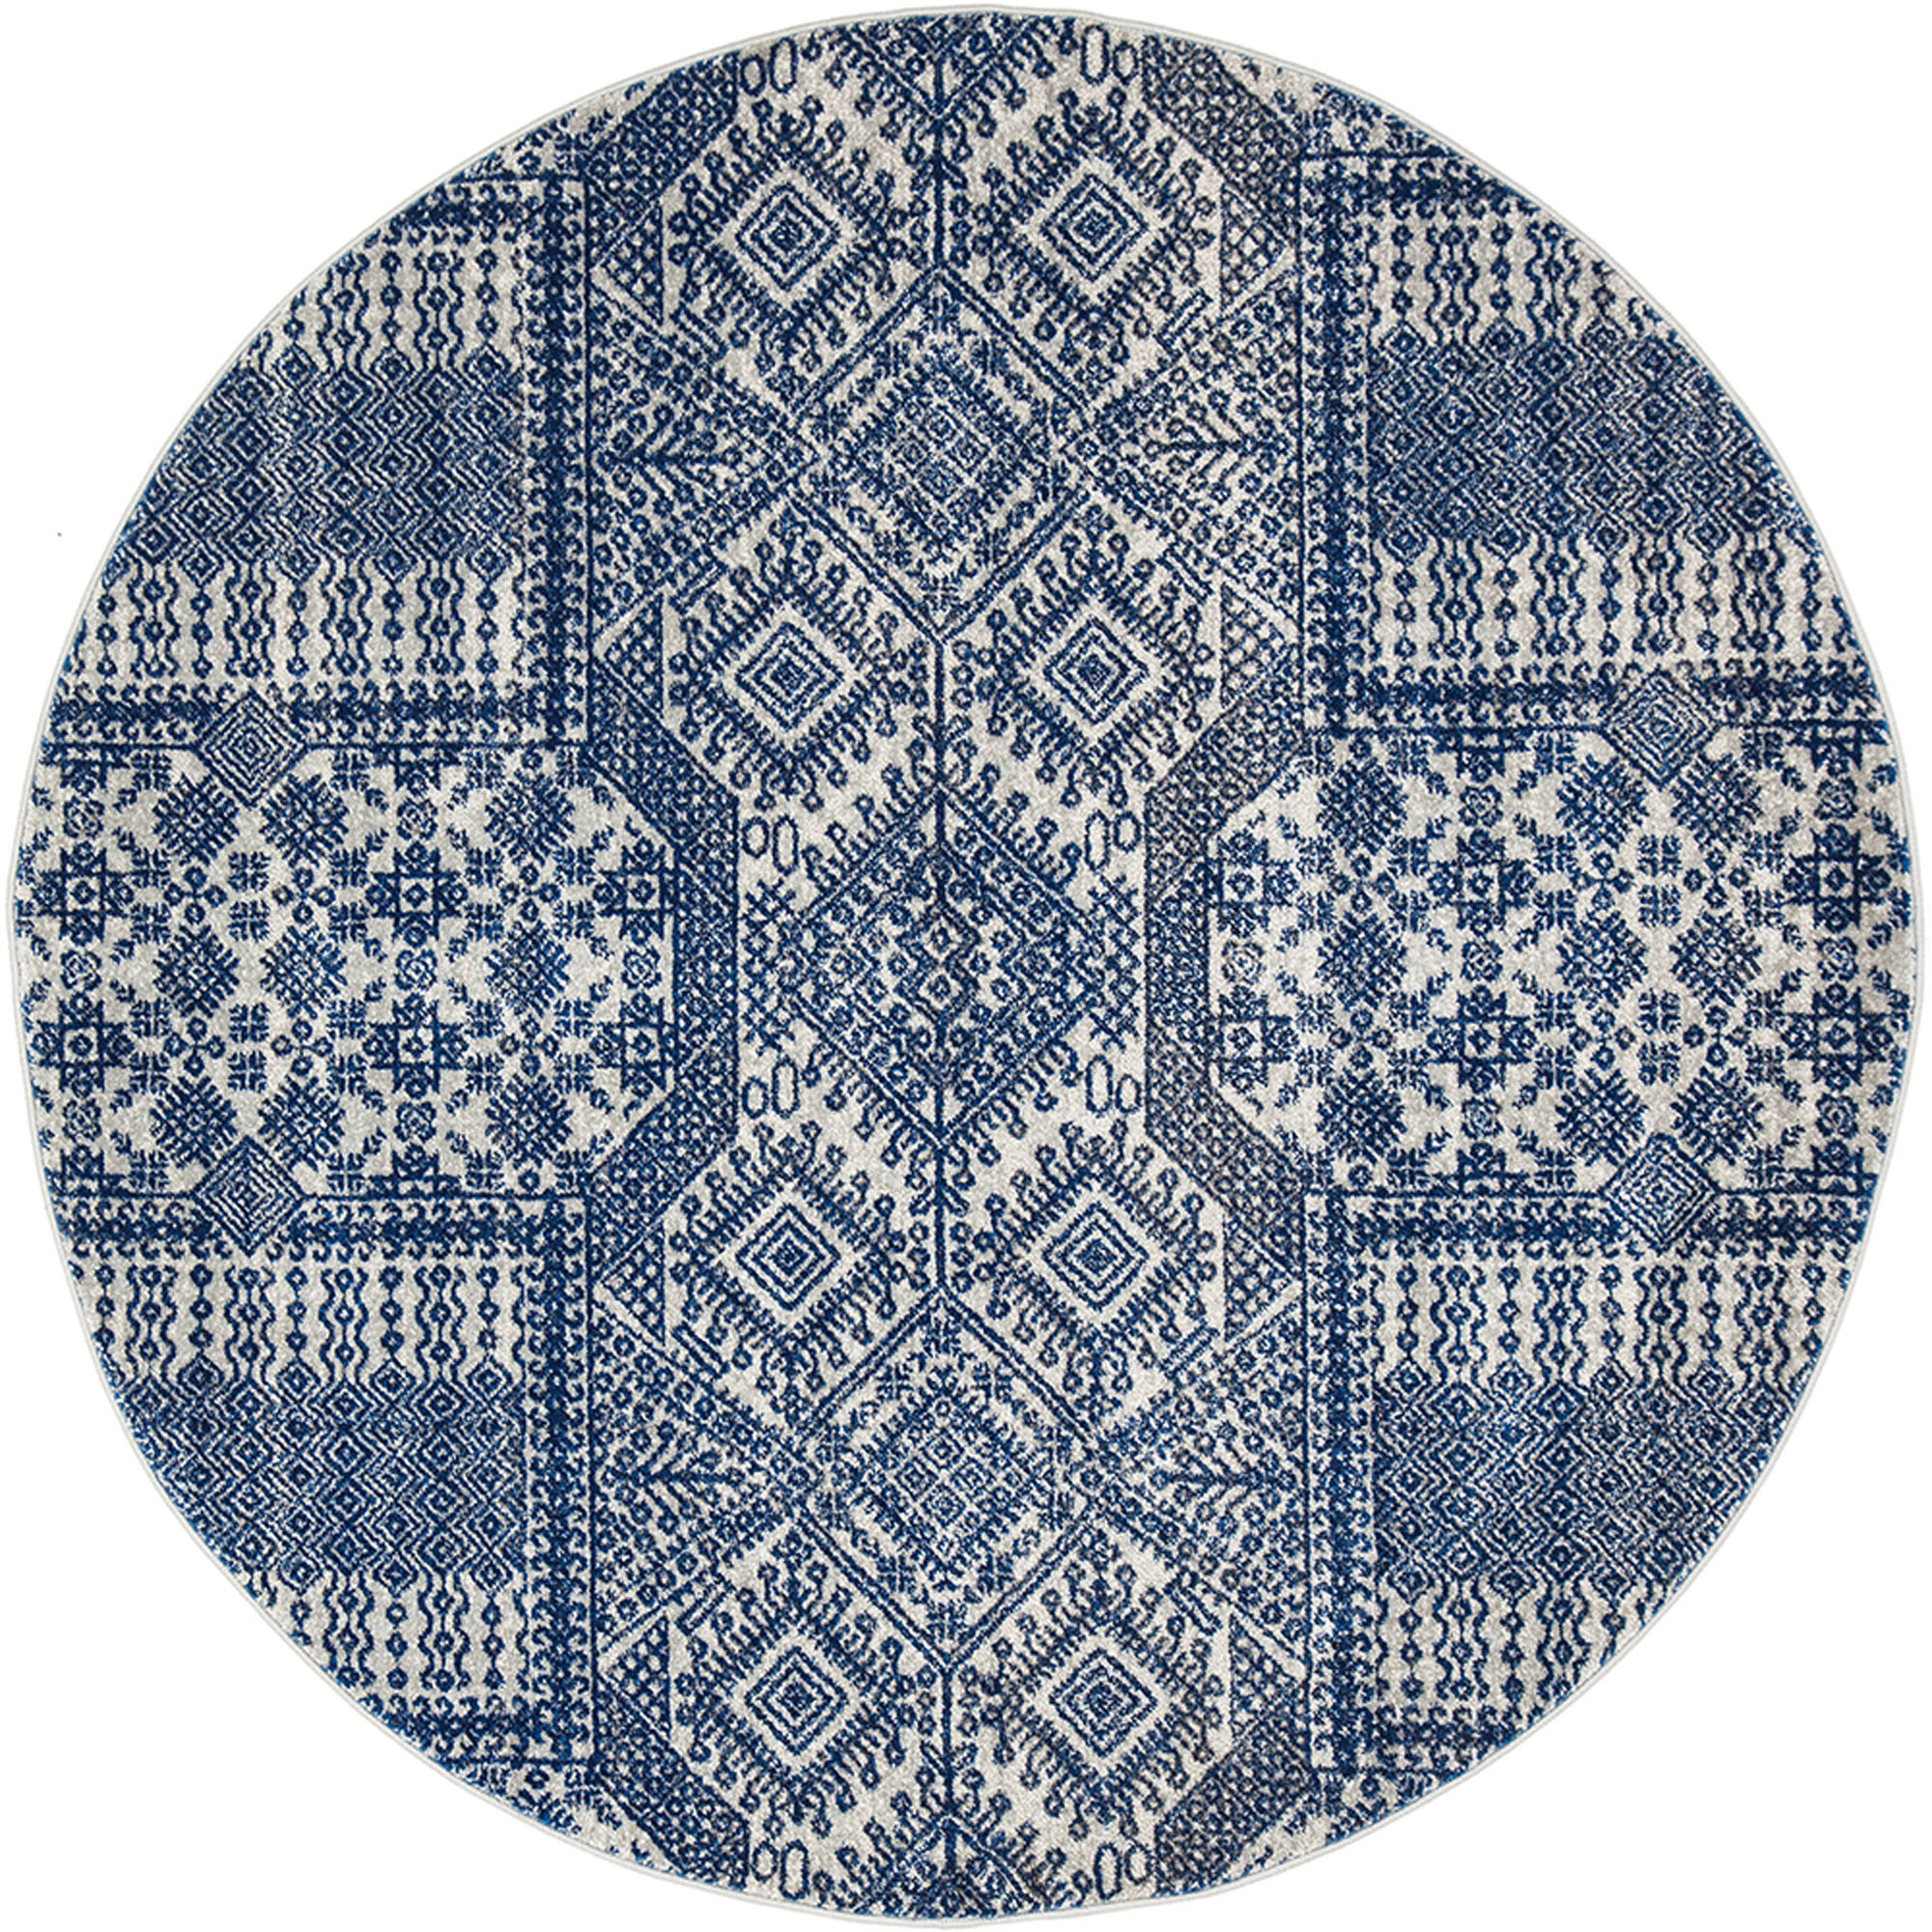 urmia navy  grey power loomed modern round rug  temple  webster - sku netw urmia navy  grey power loomed modern round rug is alsosometimes listed under the following manufacturer numbersmirnavx